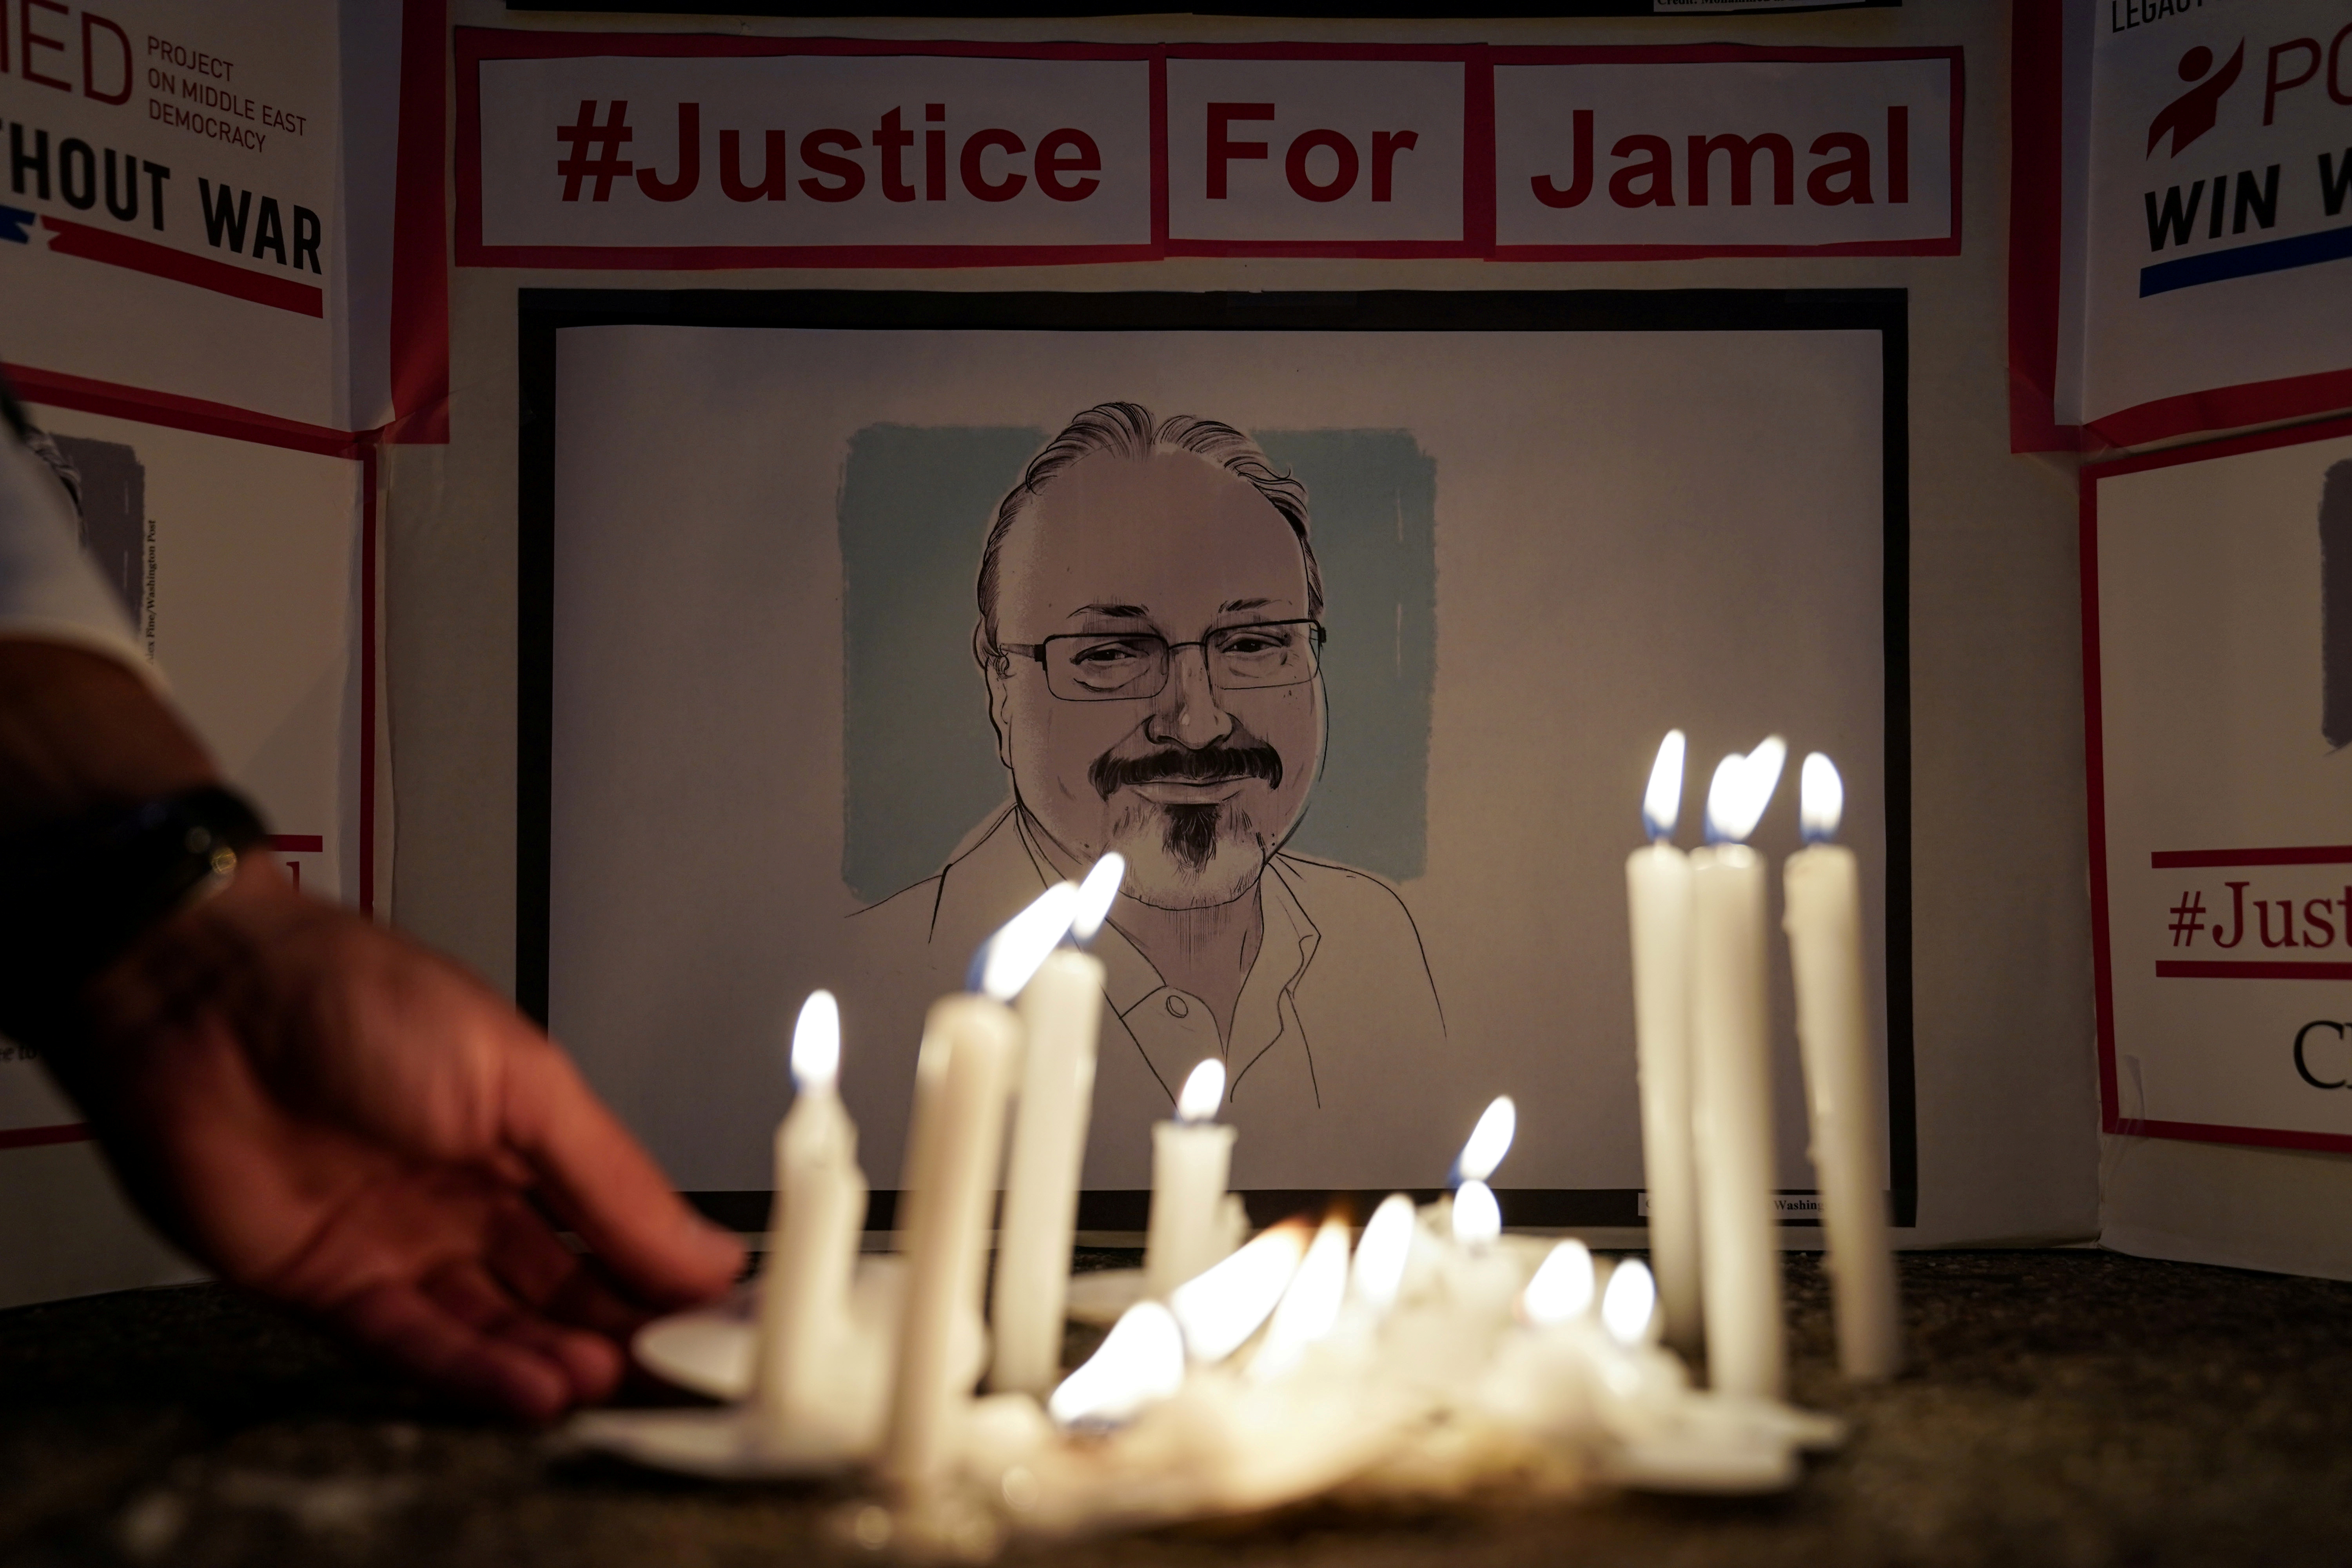 The Committee to Protect Journalists and other press freedom activists hold a candlelight vigil in front of the Saudi Embassy to mark the anniversary of the killing of journalist Jamal Khashoggi at the kingdom's consulate in Istanbul, Wednesday evening in Washington, U.S., October 2, 2019. REUTERS/Sarah Silbiger/File Photo